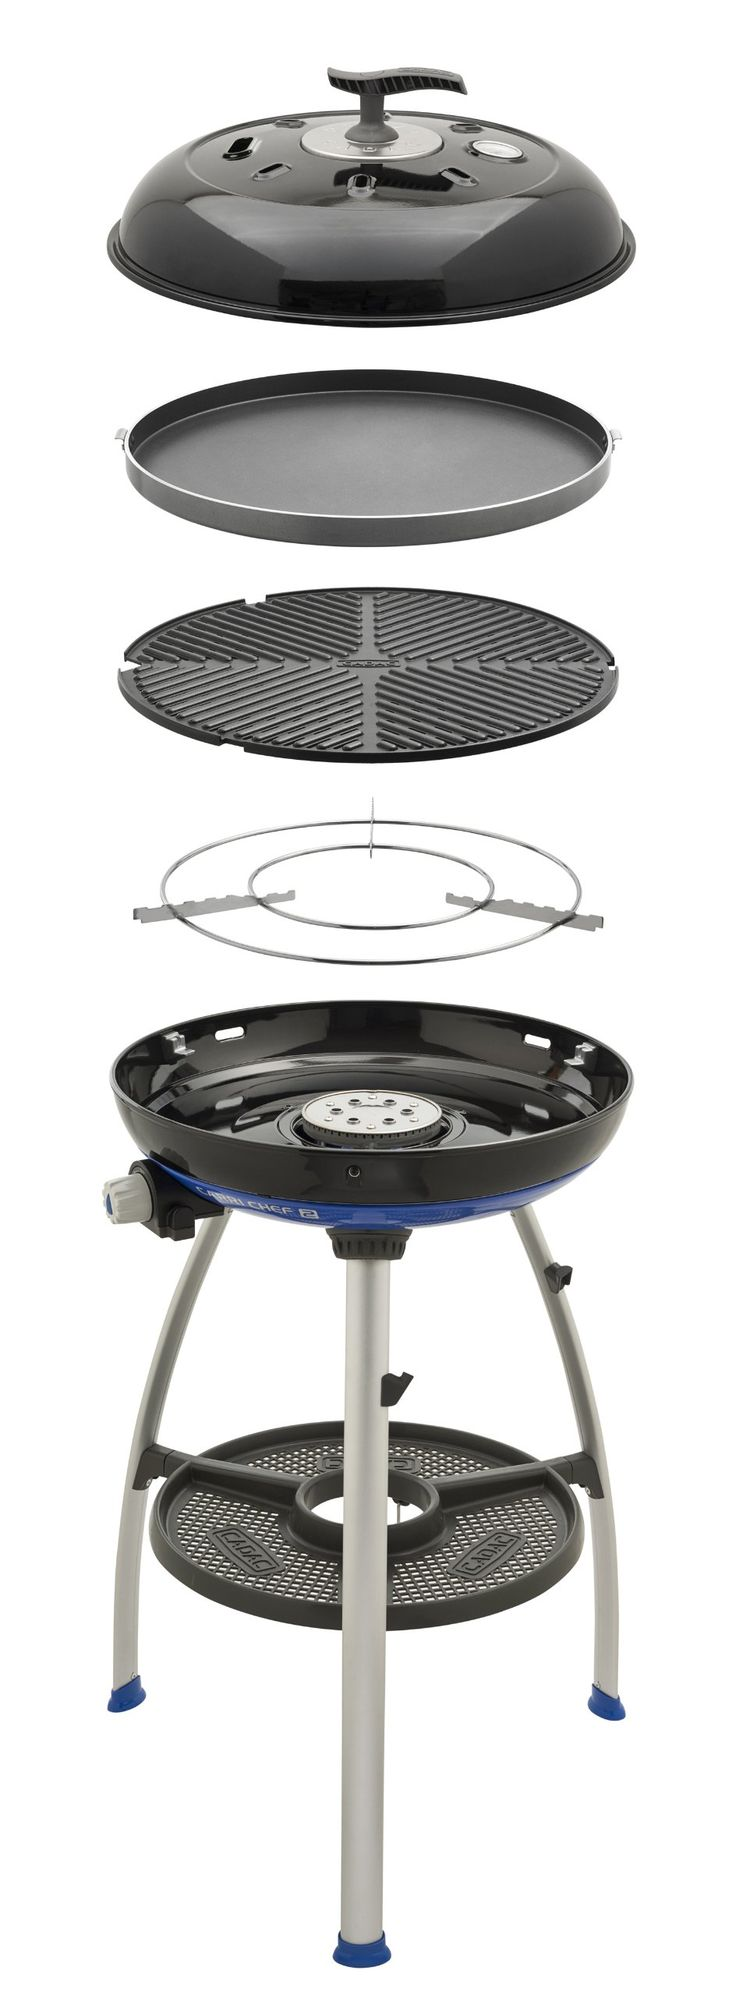 Cadac 8910-40 Carri Chef 2 Outdoor Grill with Pot Stand, Barbeque Grid and Chef Pan